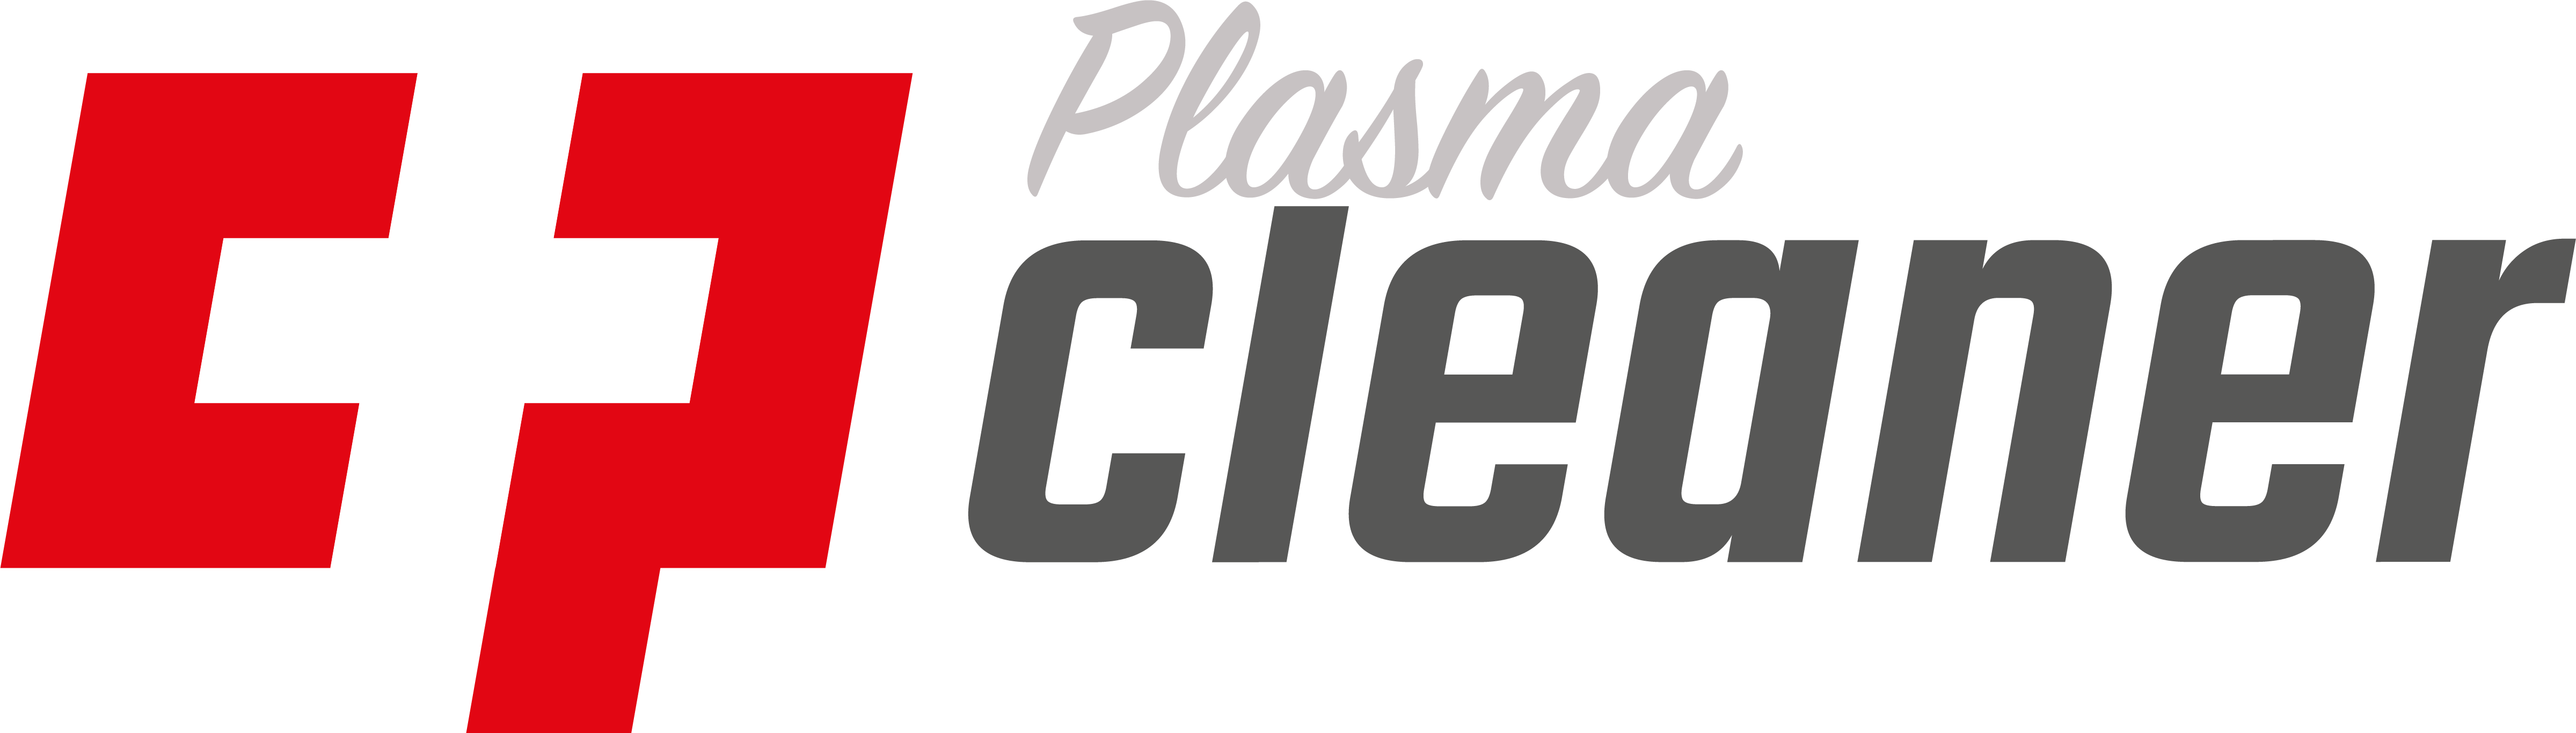 CP Plasma cleaner